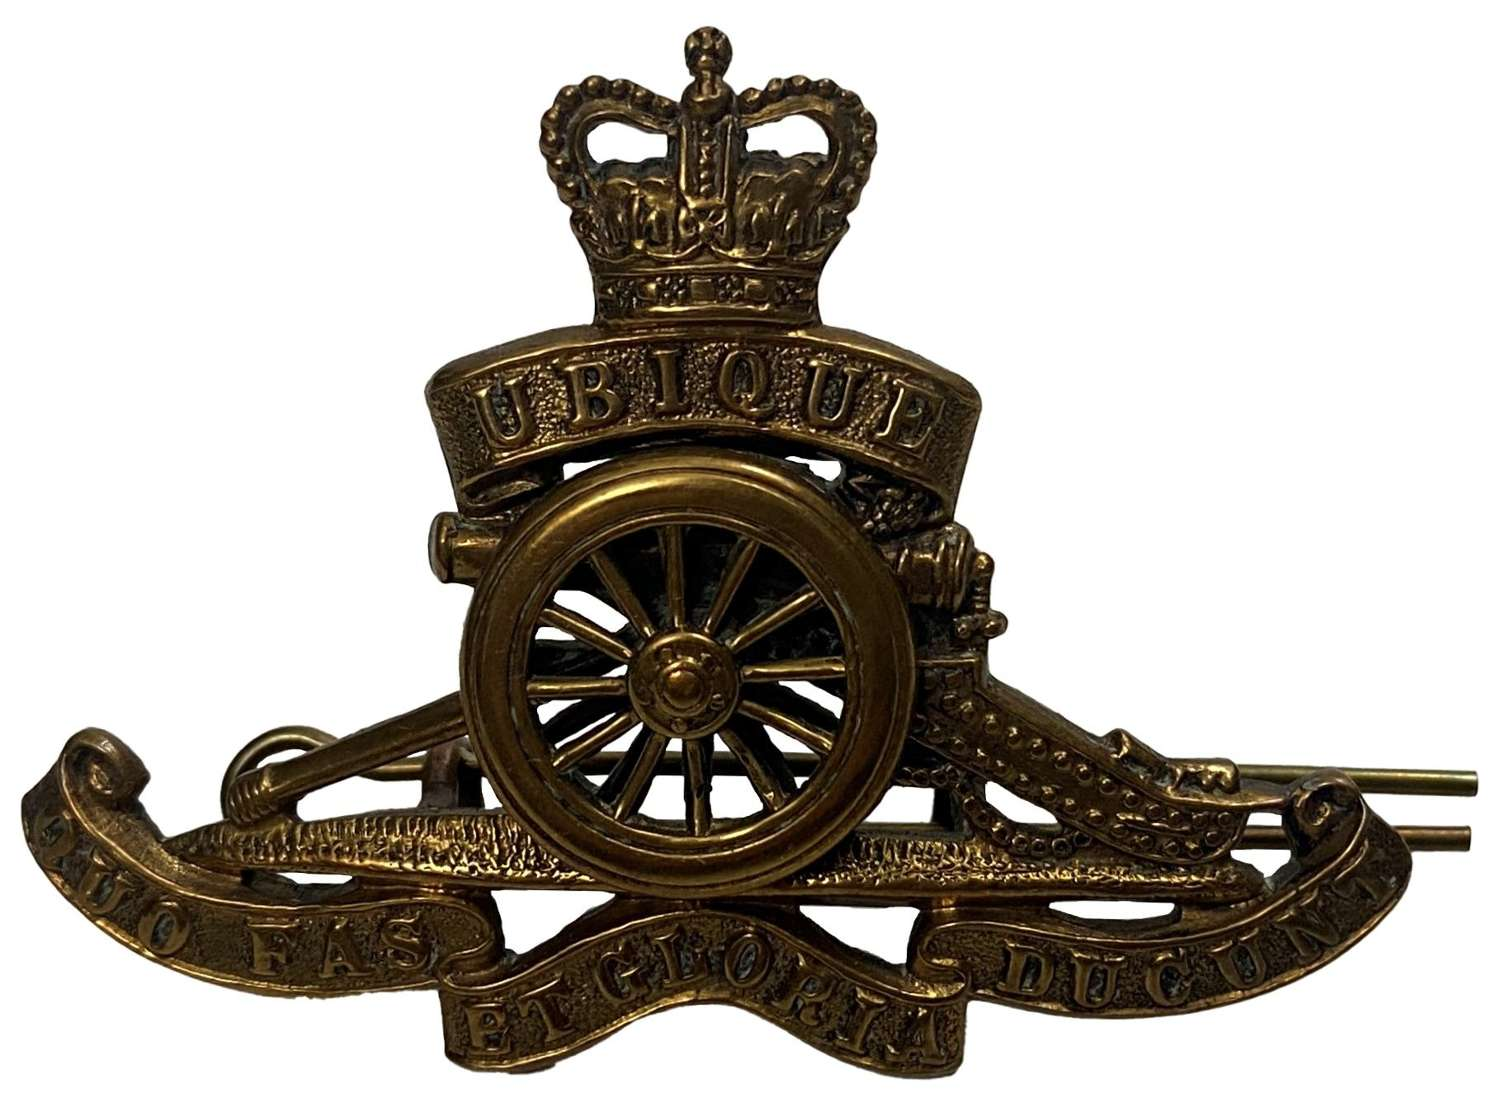 Original 1950s Royal Artillery Cap Badge - Spinning Wheel